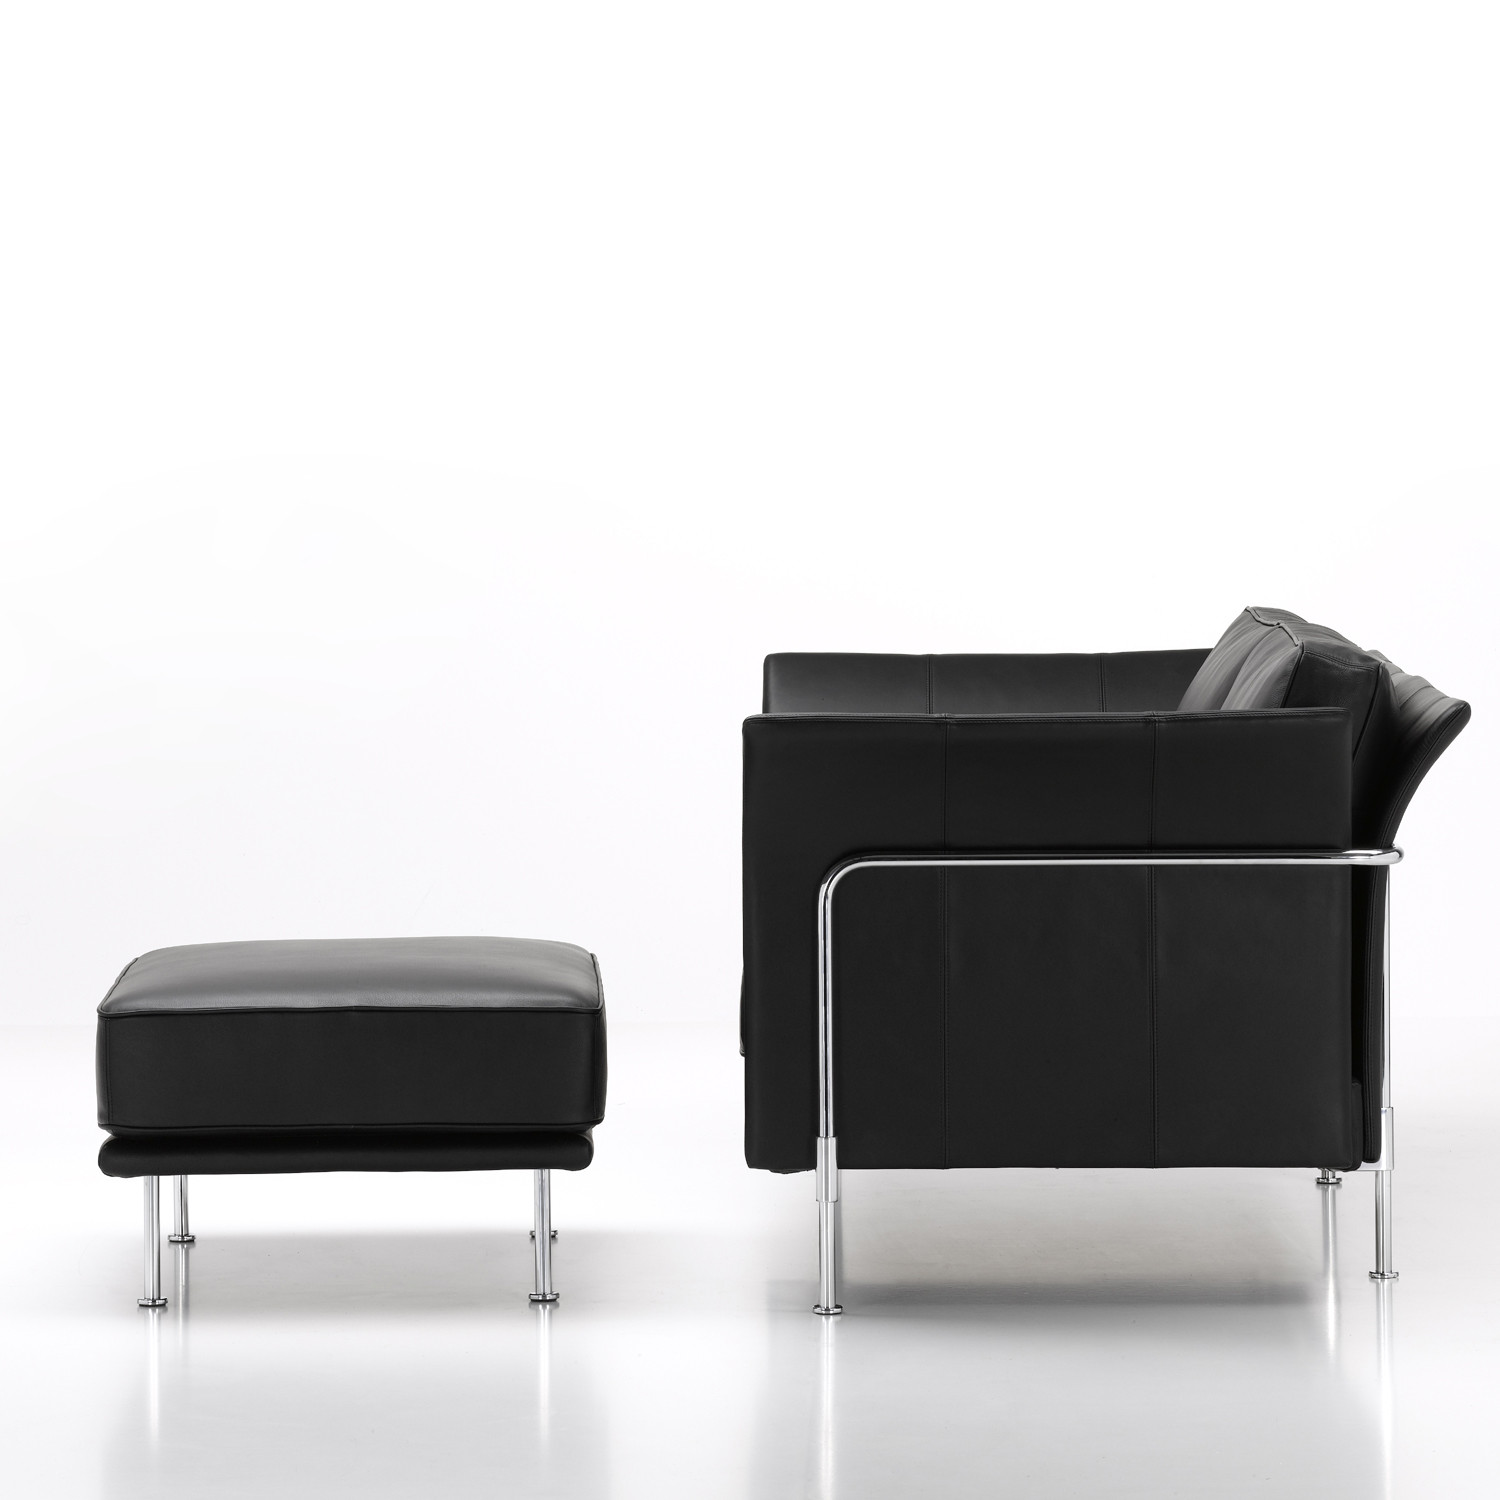 Soft Shell Sofa and Ottoman